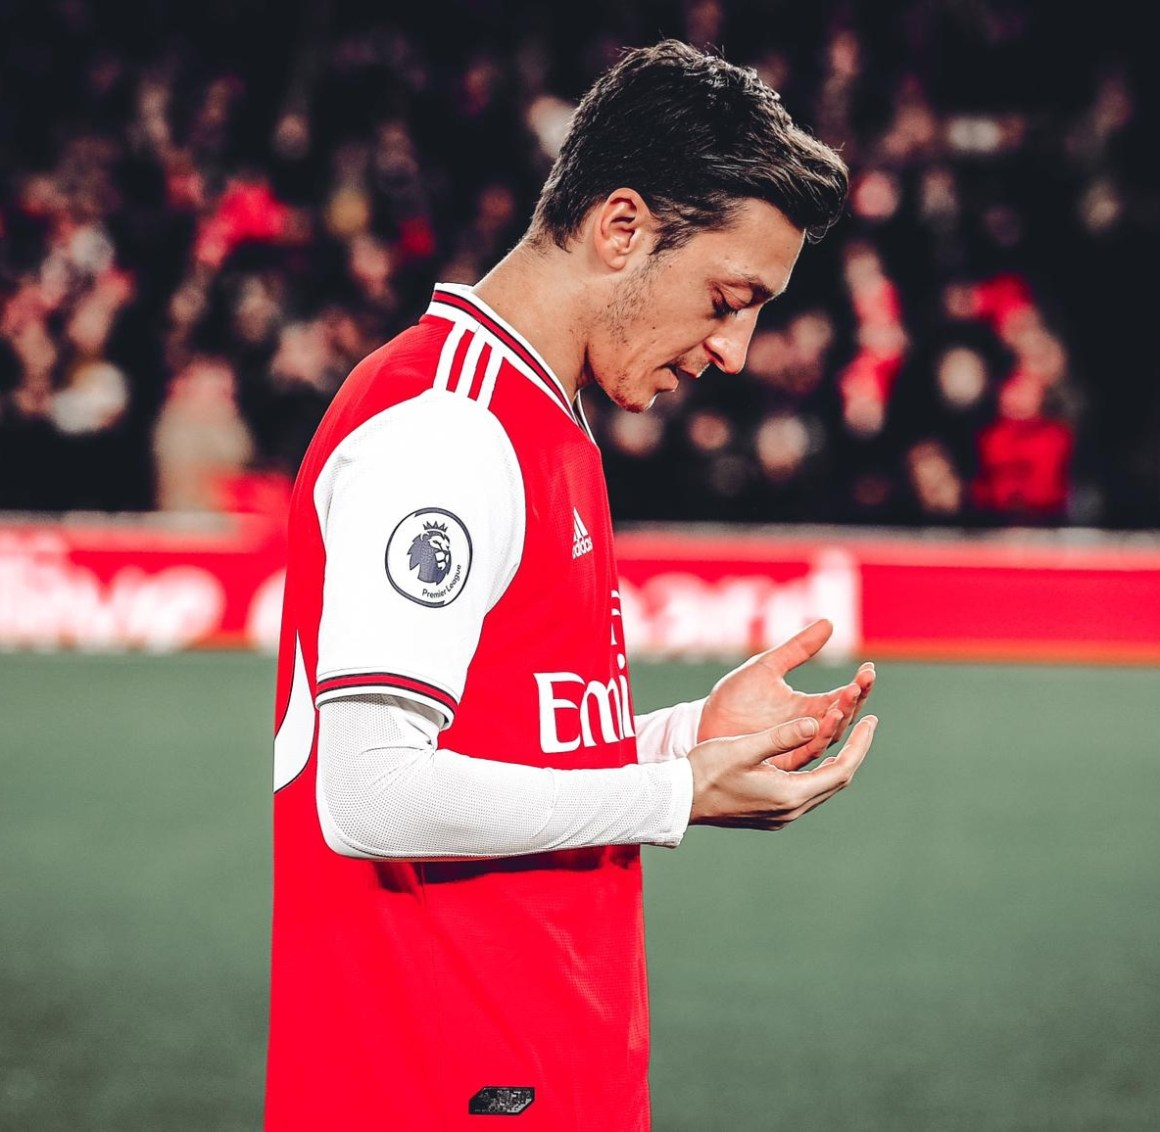 """Mesut Özil on Twitter: """"ALLAH is the reason why even in pain, I smile; in  confusion, I understand; in betrayal, I trust; and in fear I continue to  fight 🤲🏼♥ #M1Ö… https://t.co/0leG0xCzSa"""""""